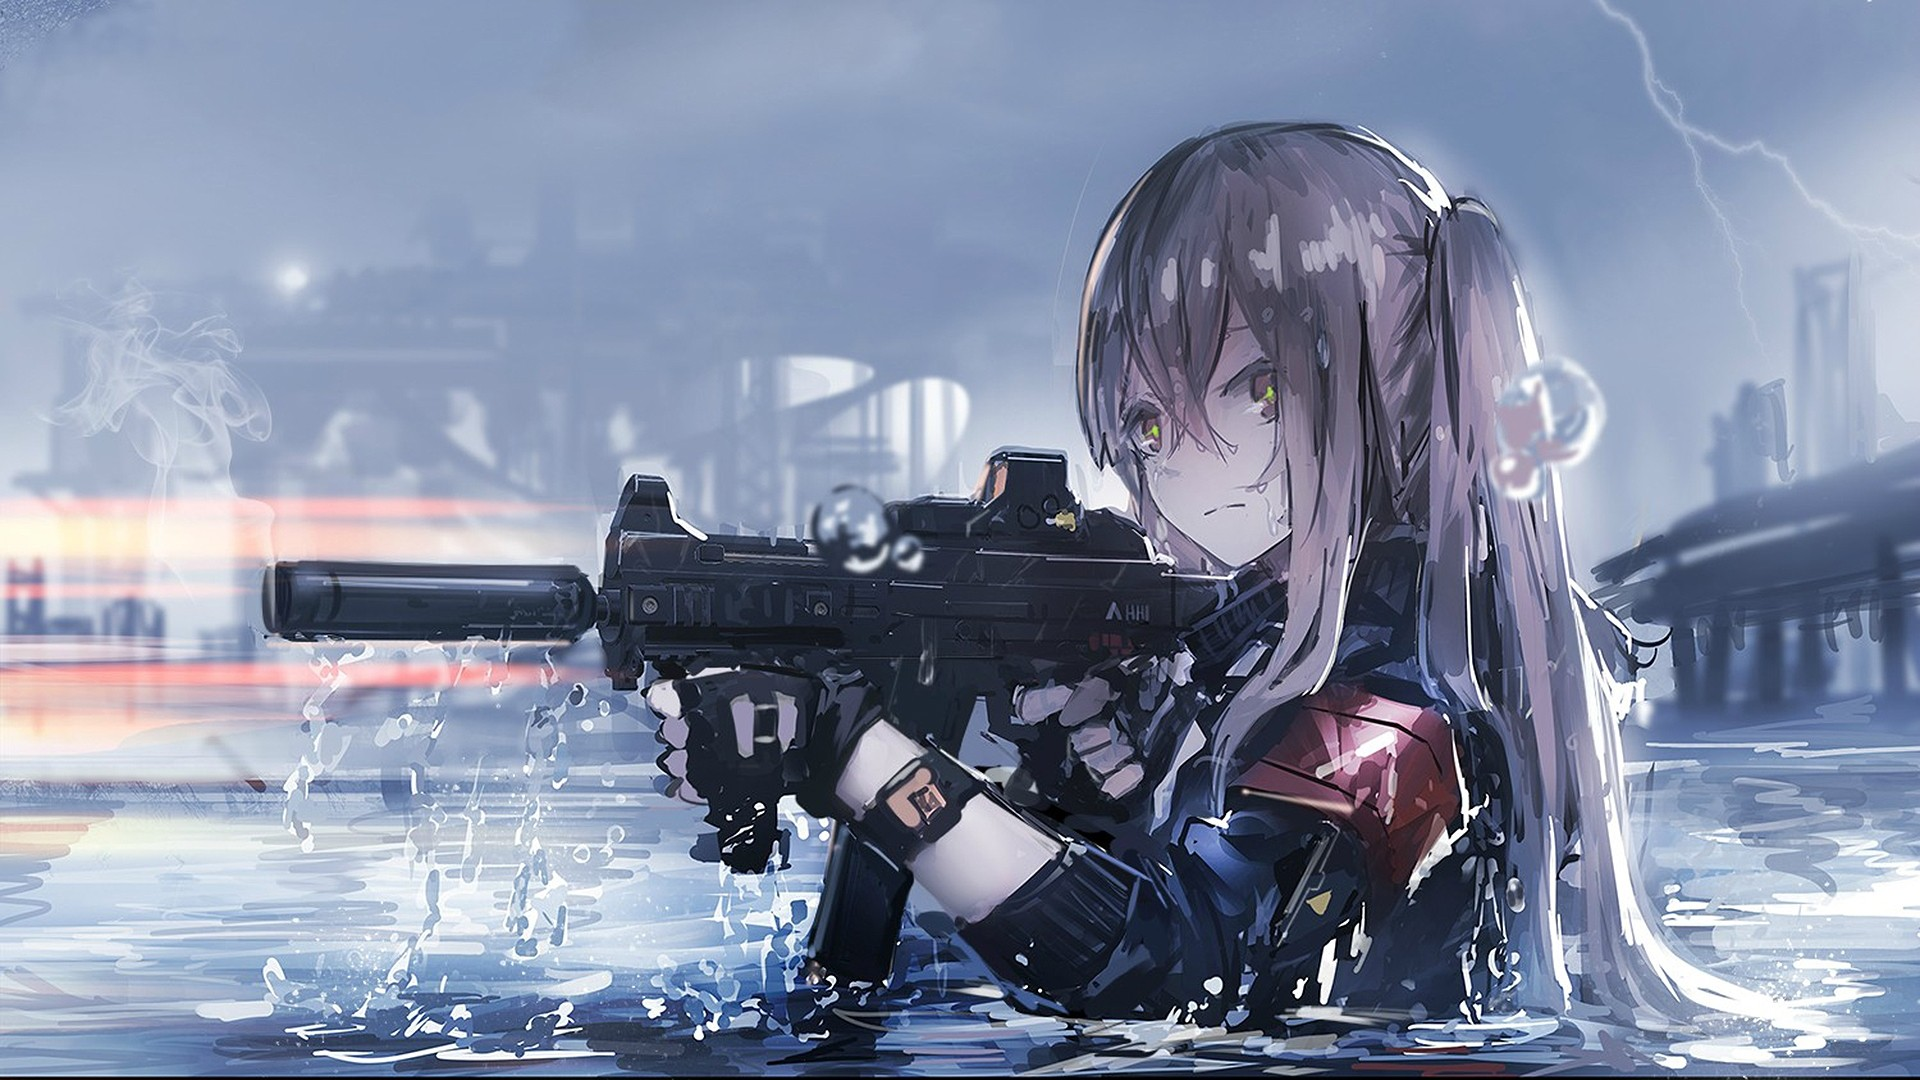 Anime Girls With Guns Wallpapers 20 Images Wallpaperboat